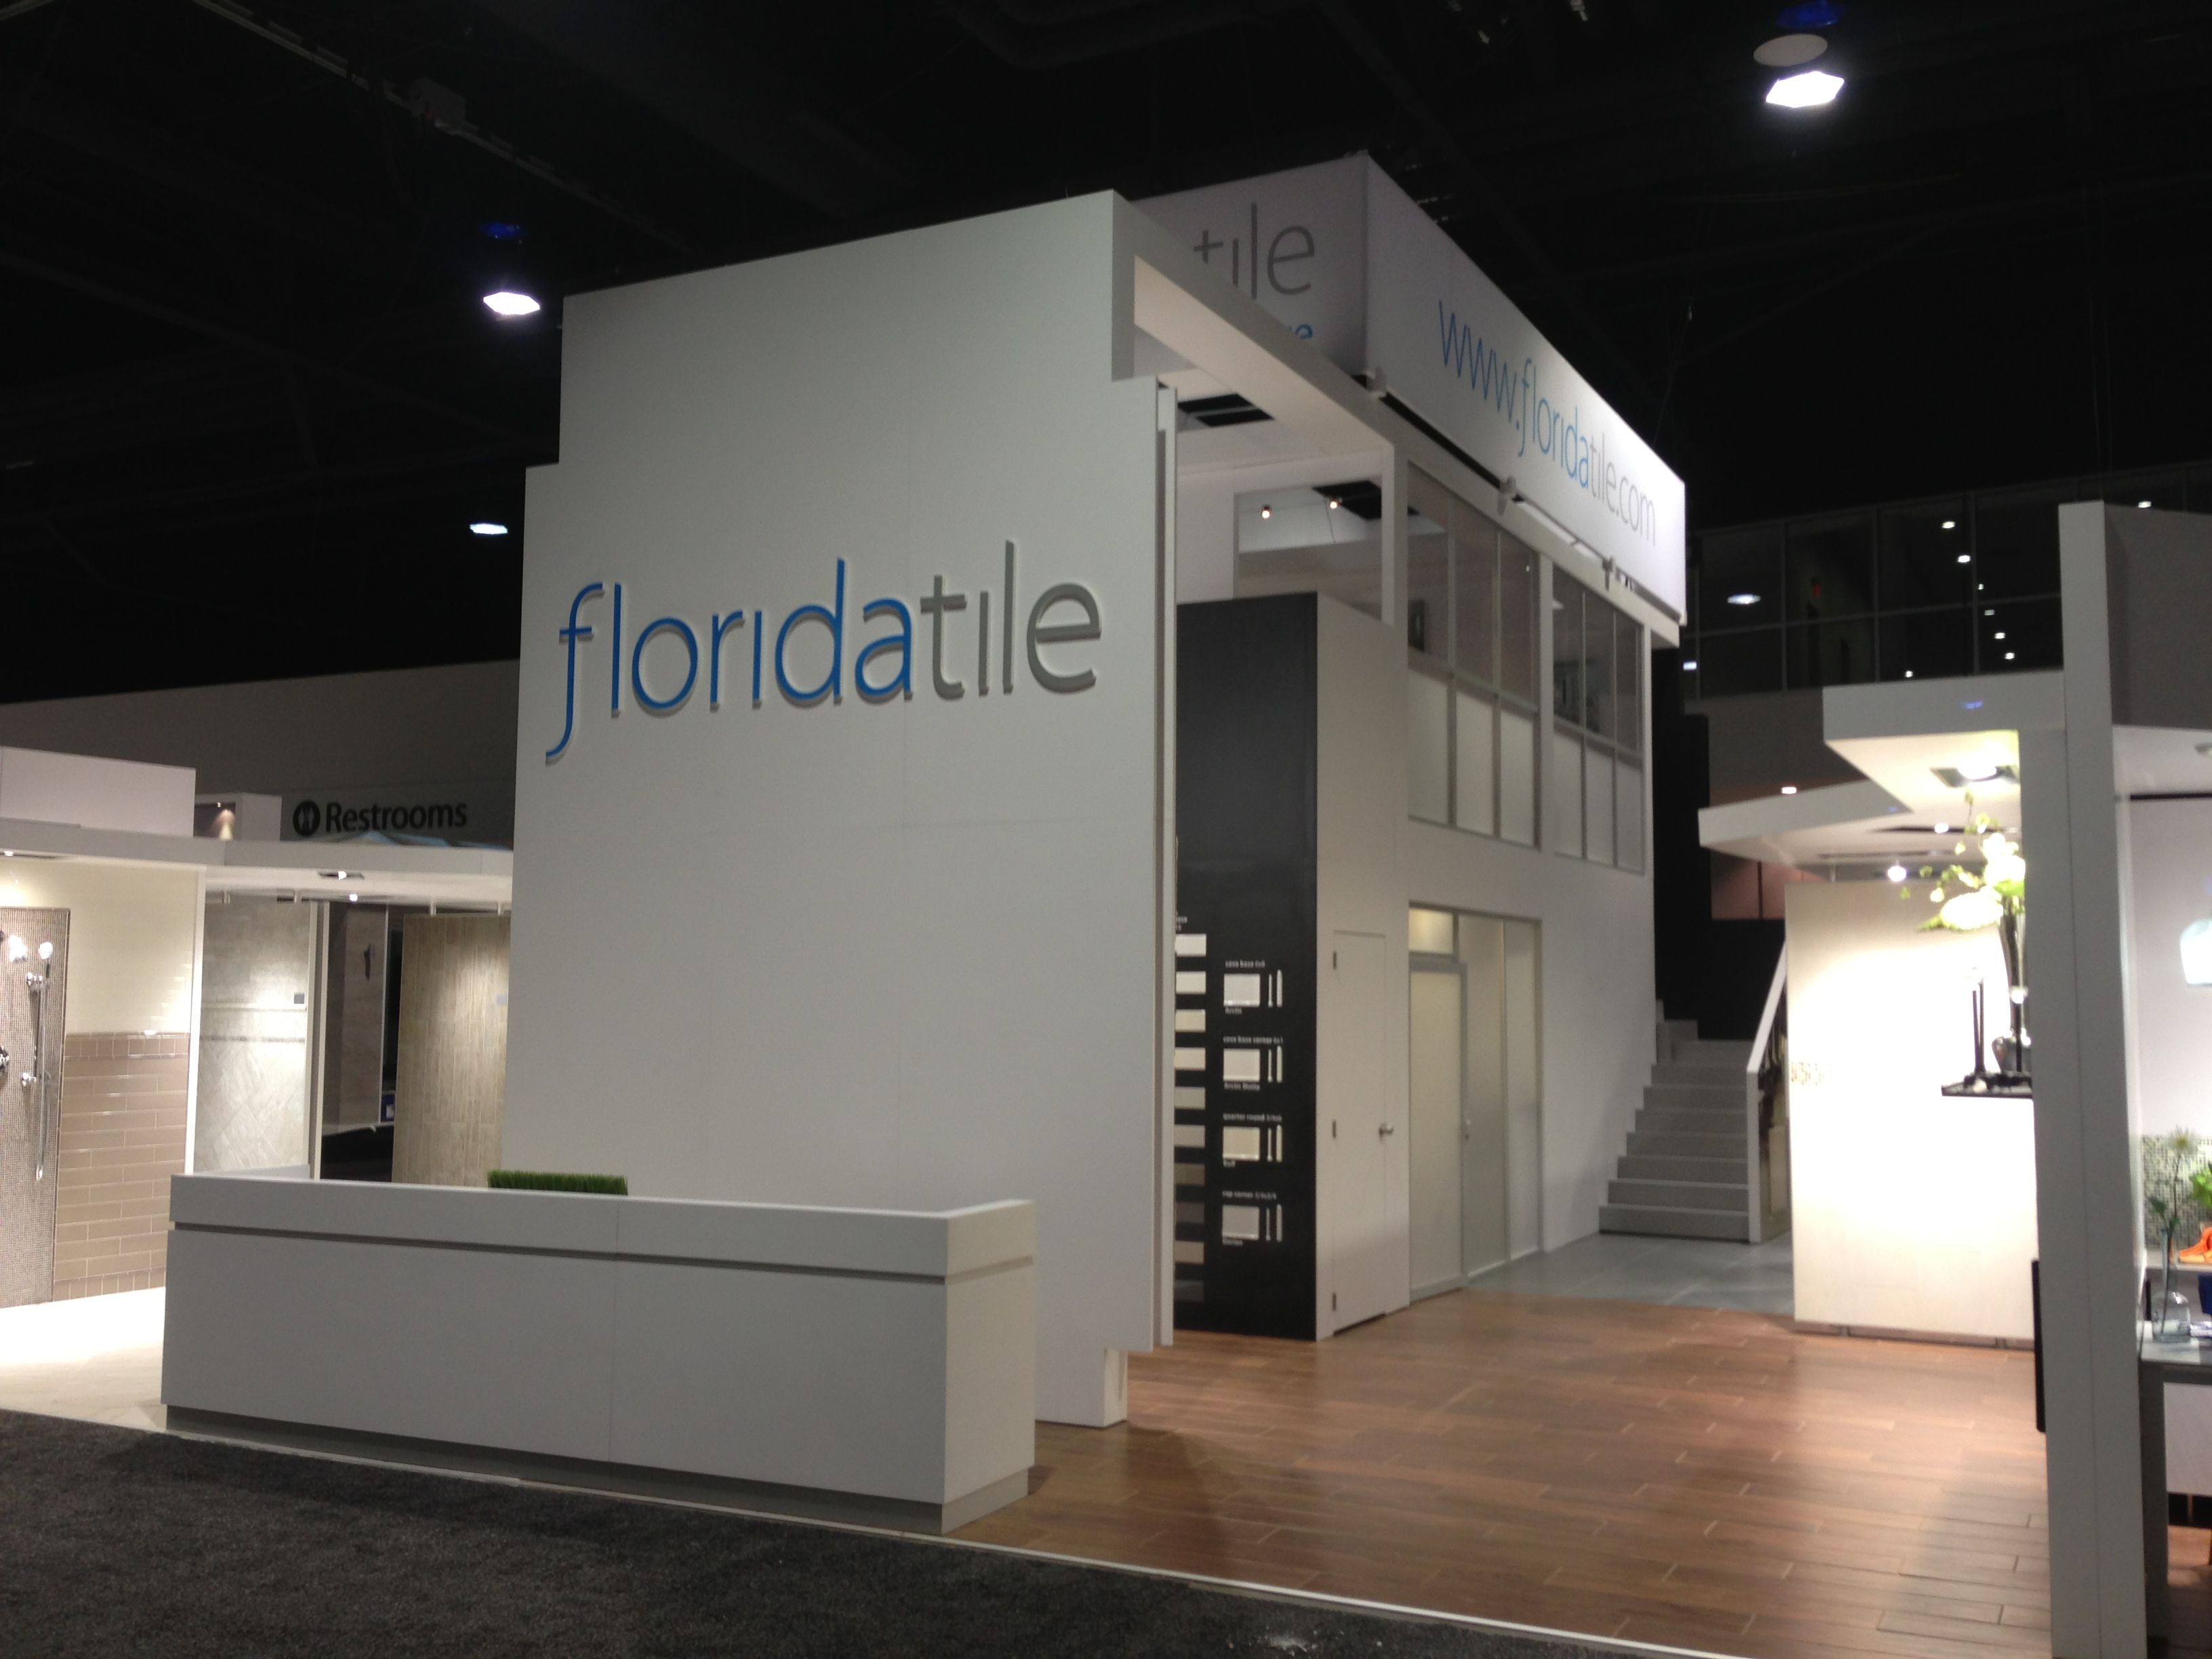 Coverings Florida Tile